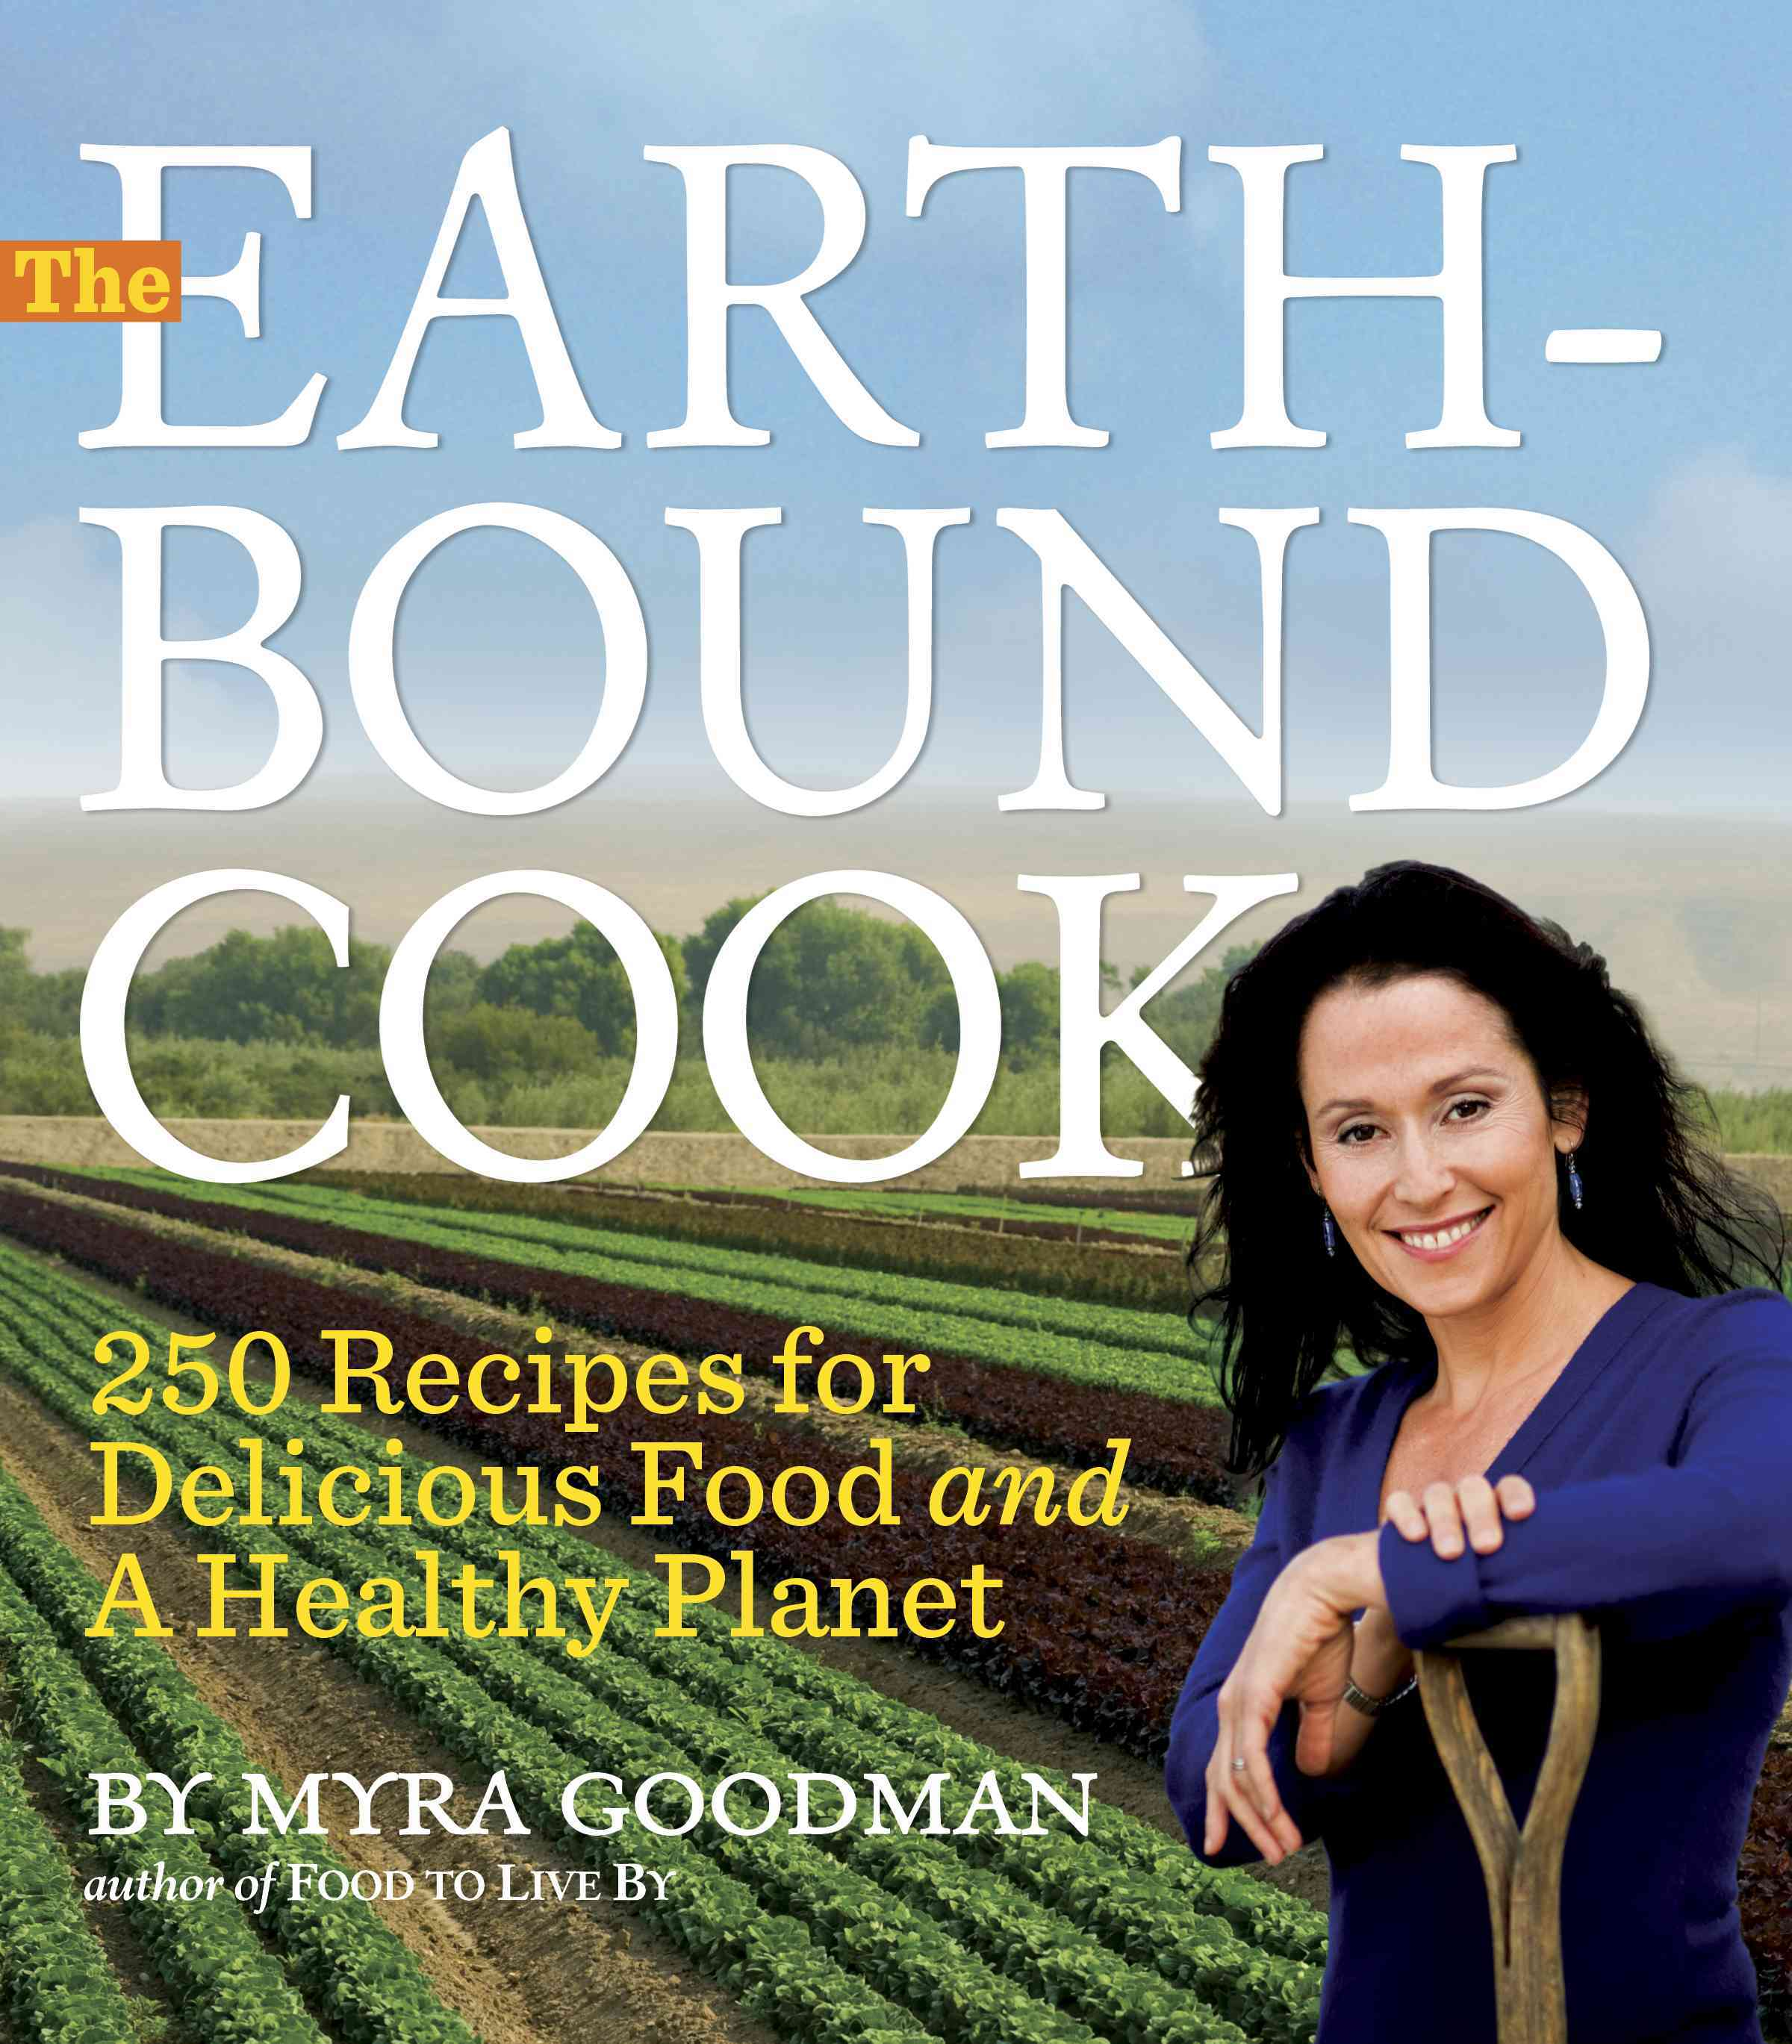 The Earthbound Cook: 250 Recipes for Delicious Food and a Healthy Planet (Paperback)